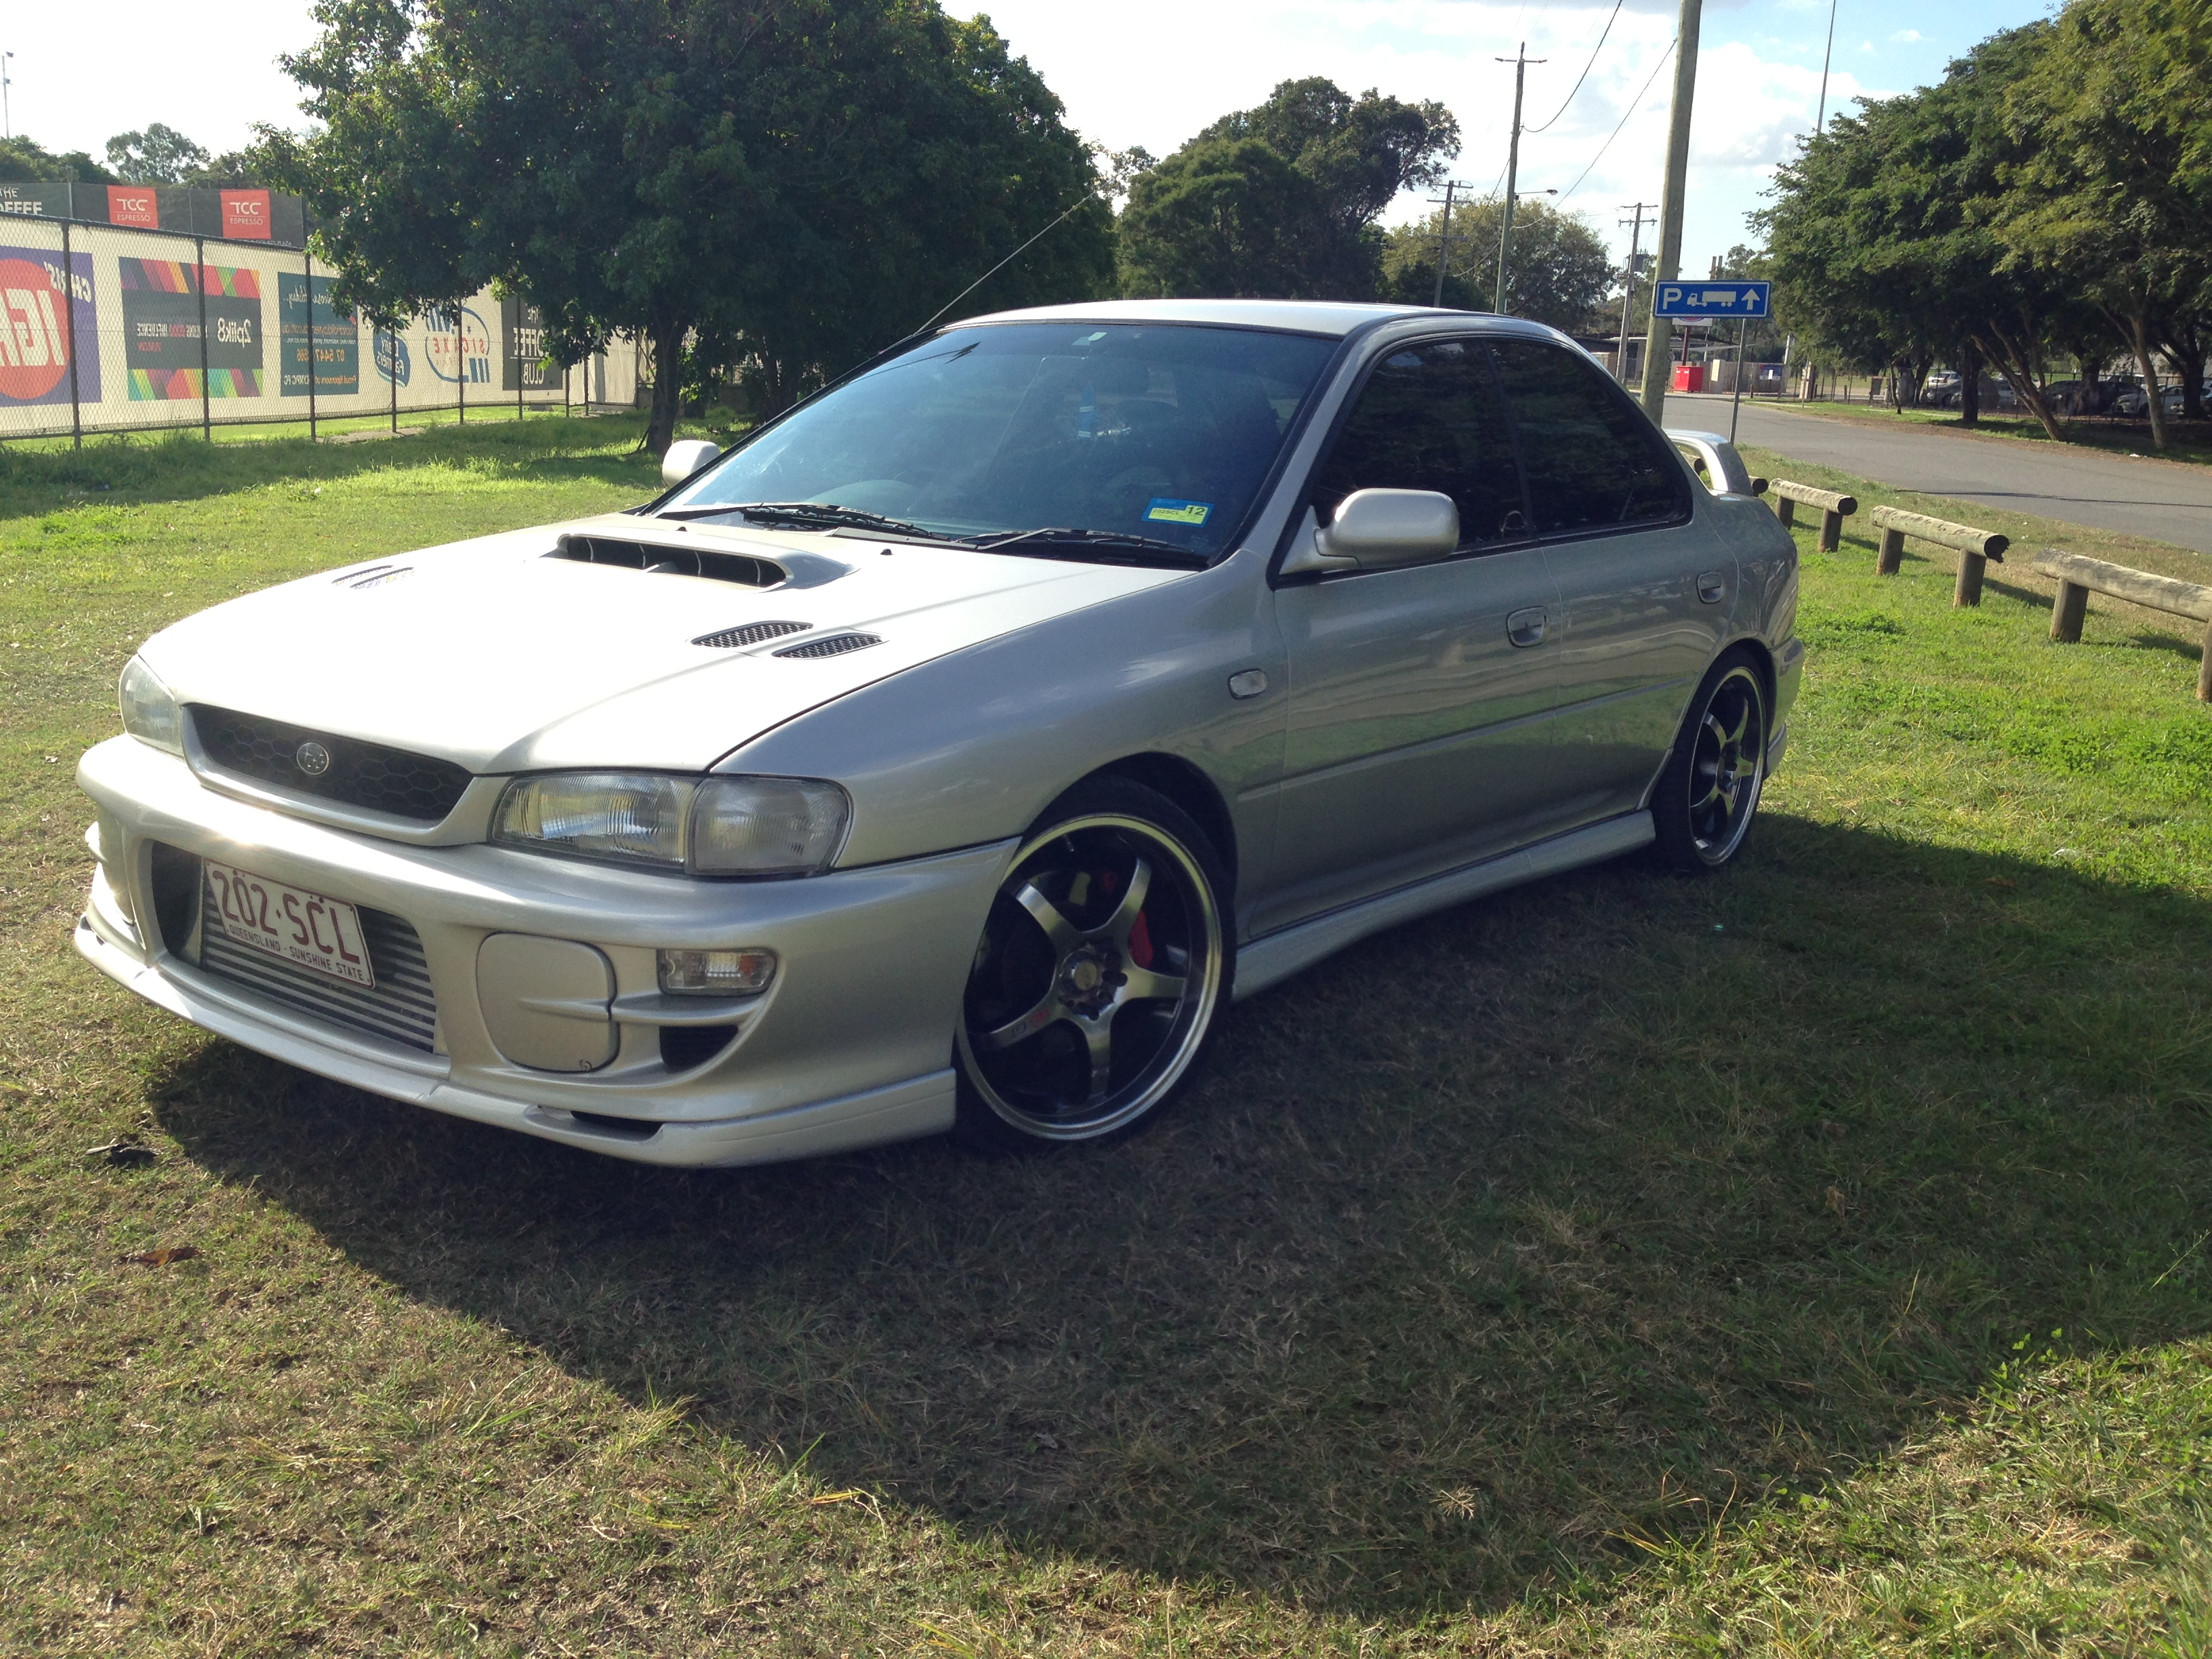 1999 subaru impreza wrx awd my00 car sales qld brisbane. Black Bedroom Furniture Sets. Home Design Ideas